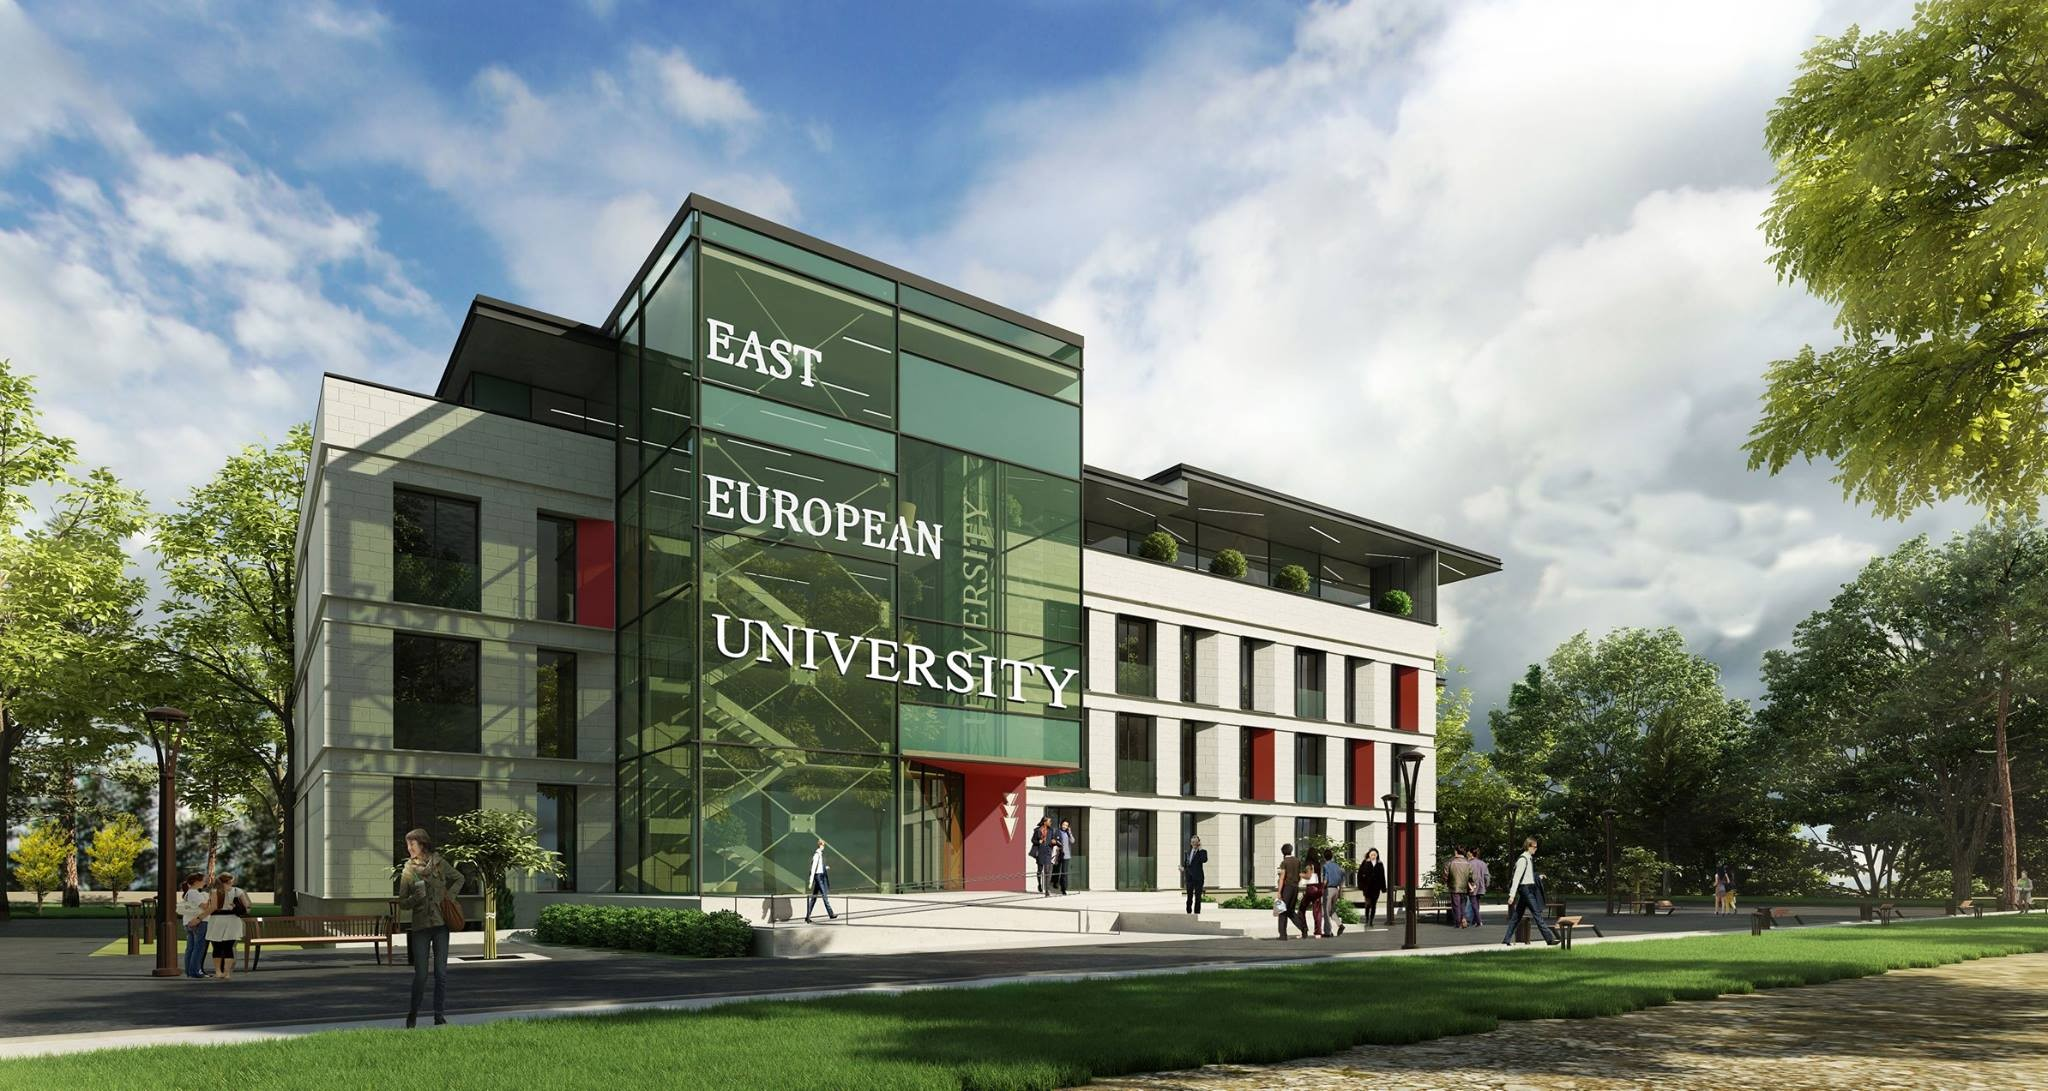 East European university Georgia